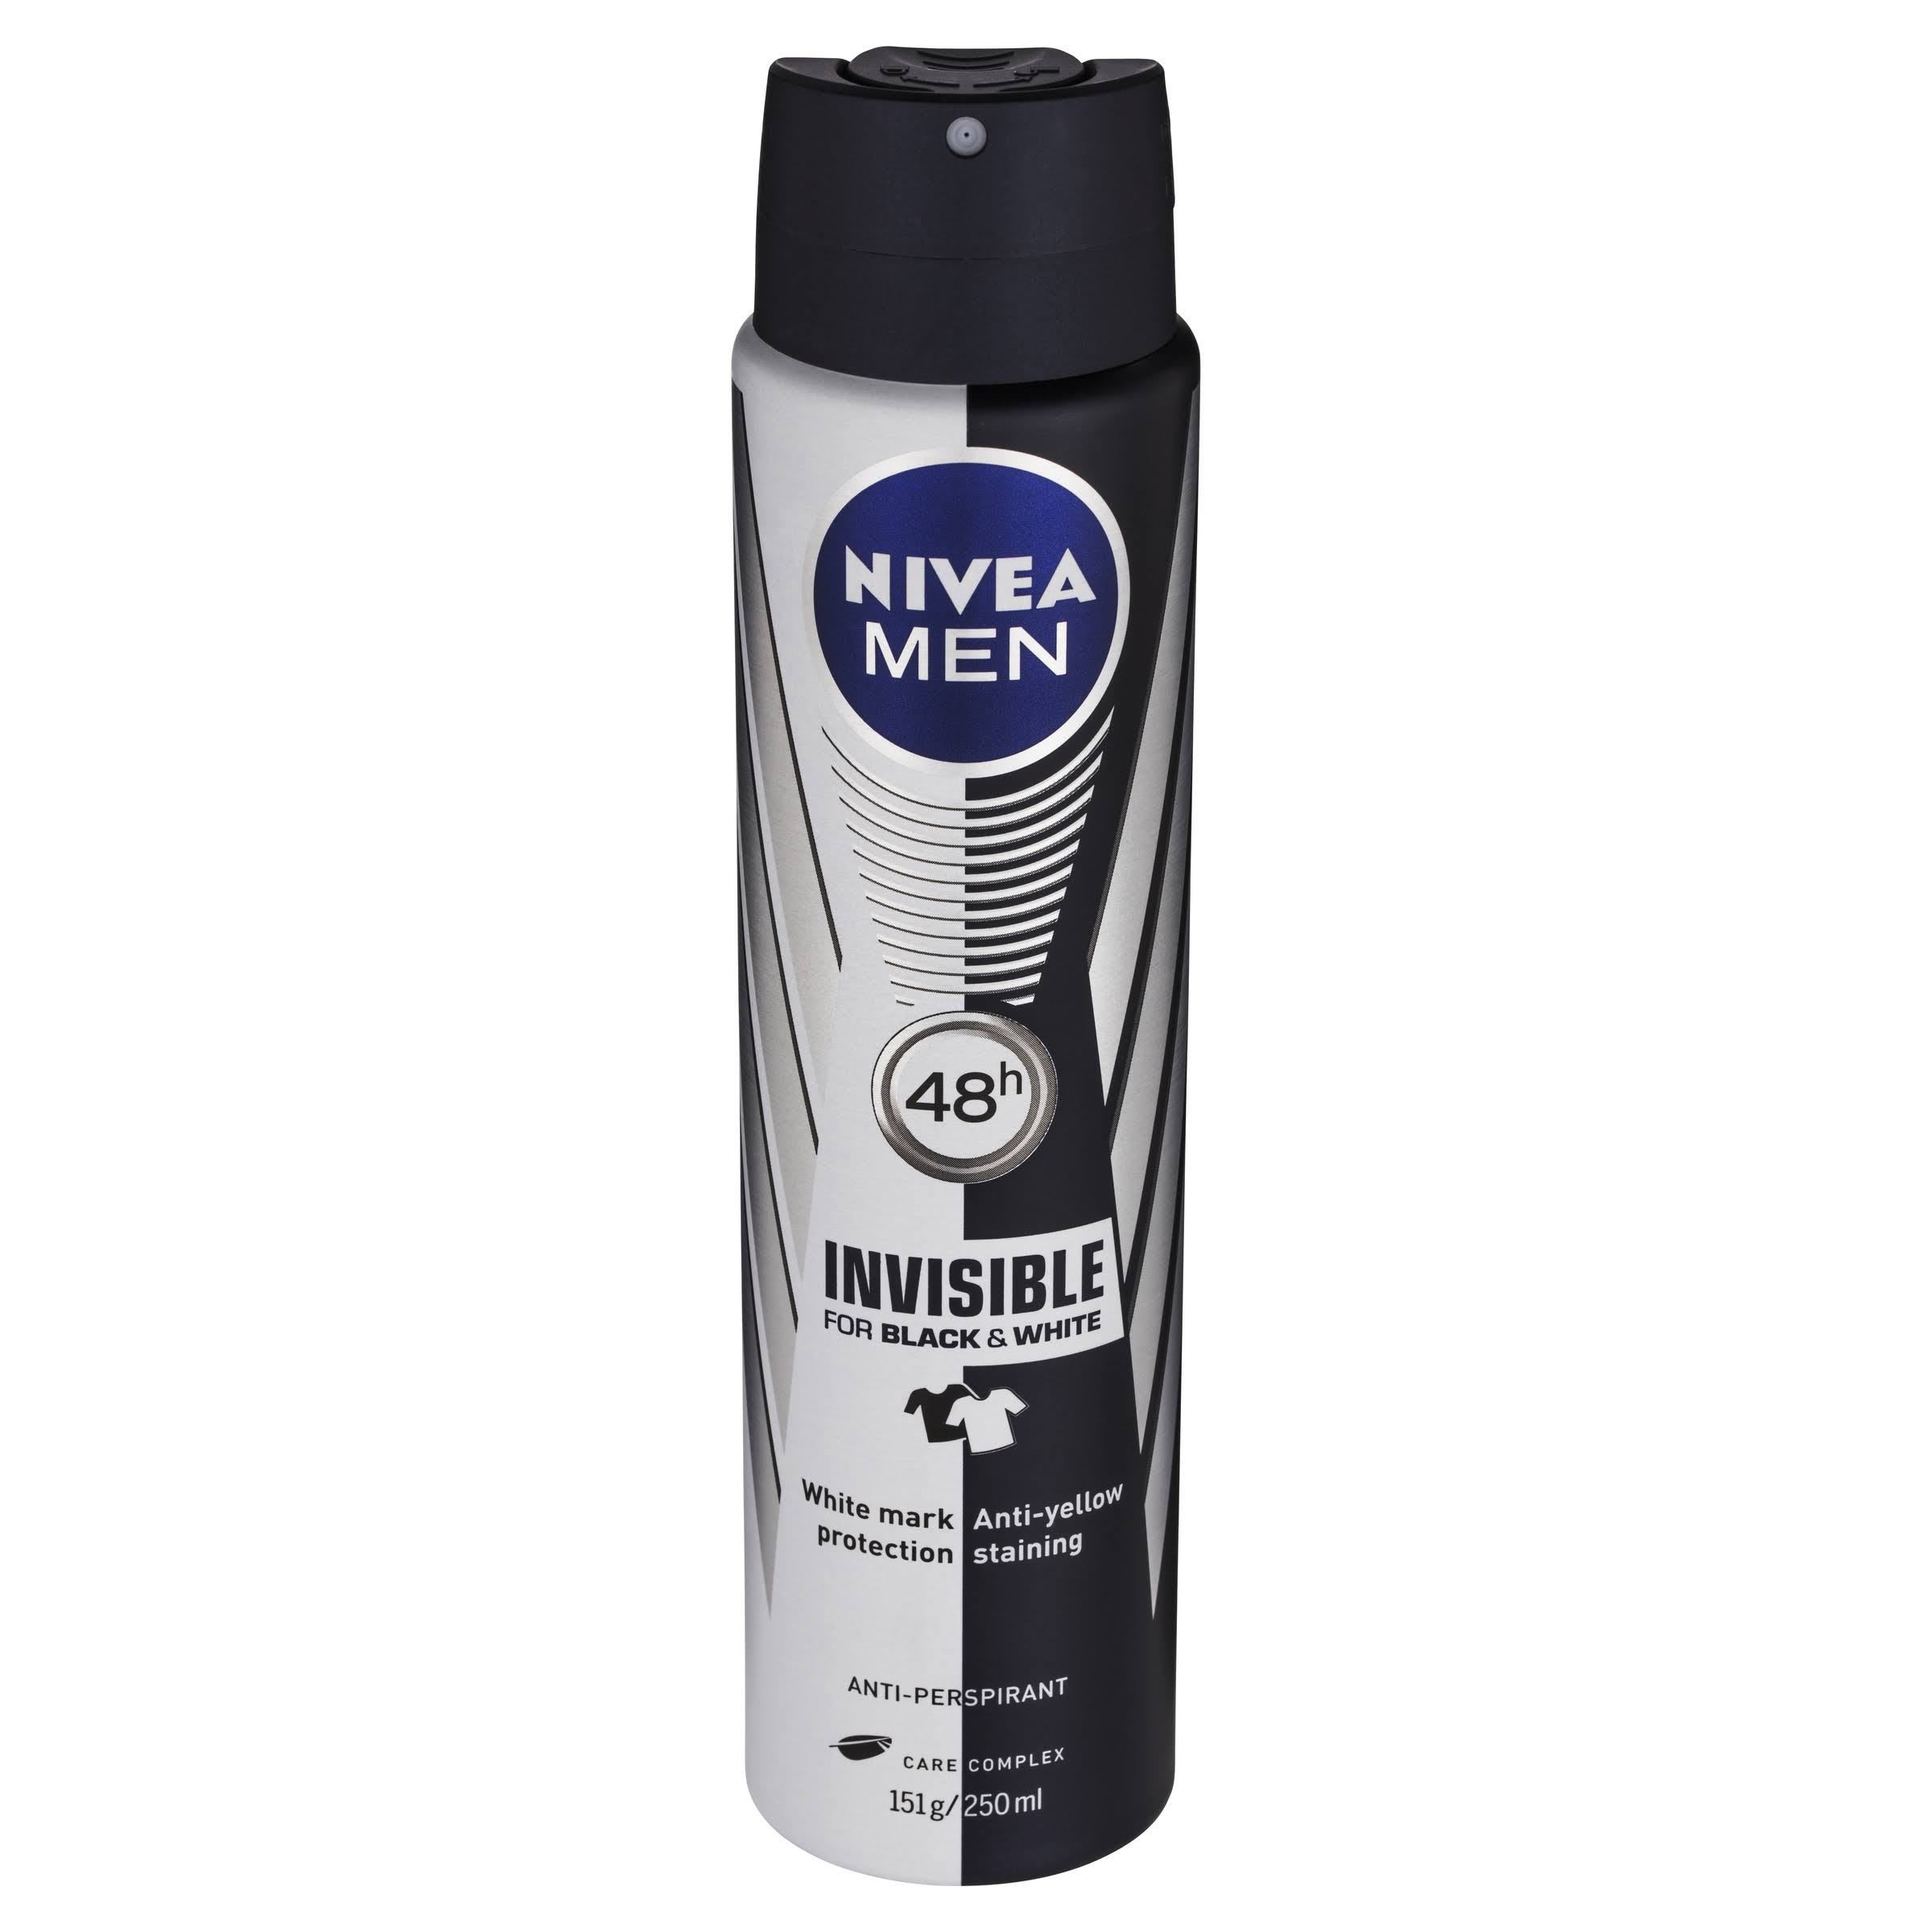 Nivea Men Black and White Original Anti-Perspirant Deodorant Spray - 250ml